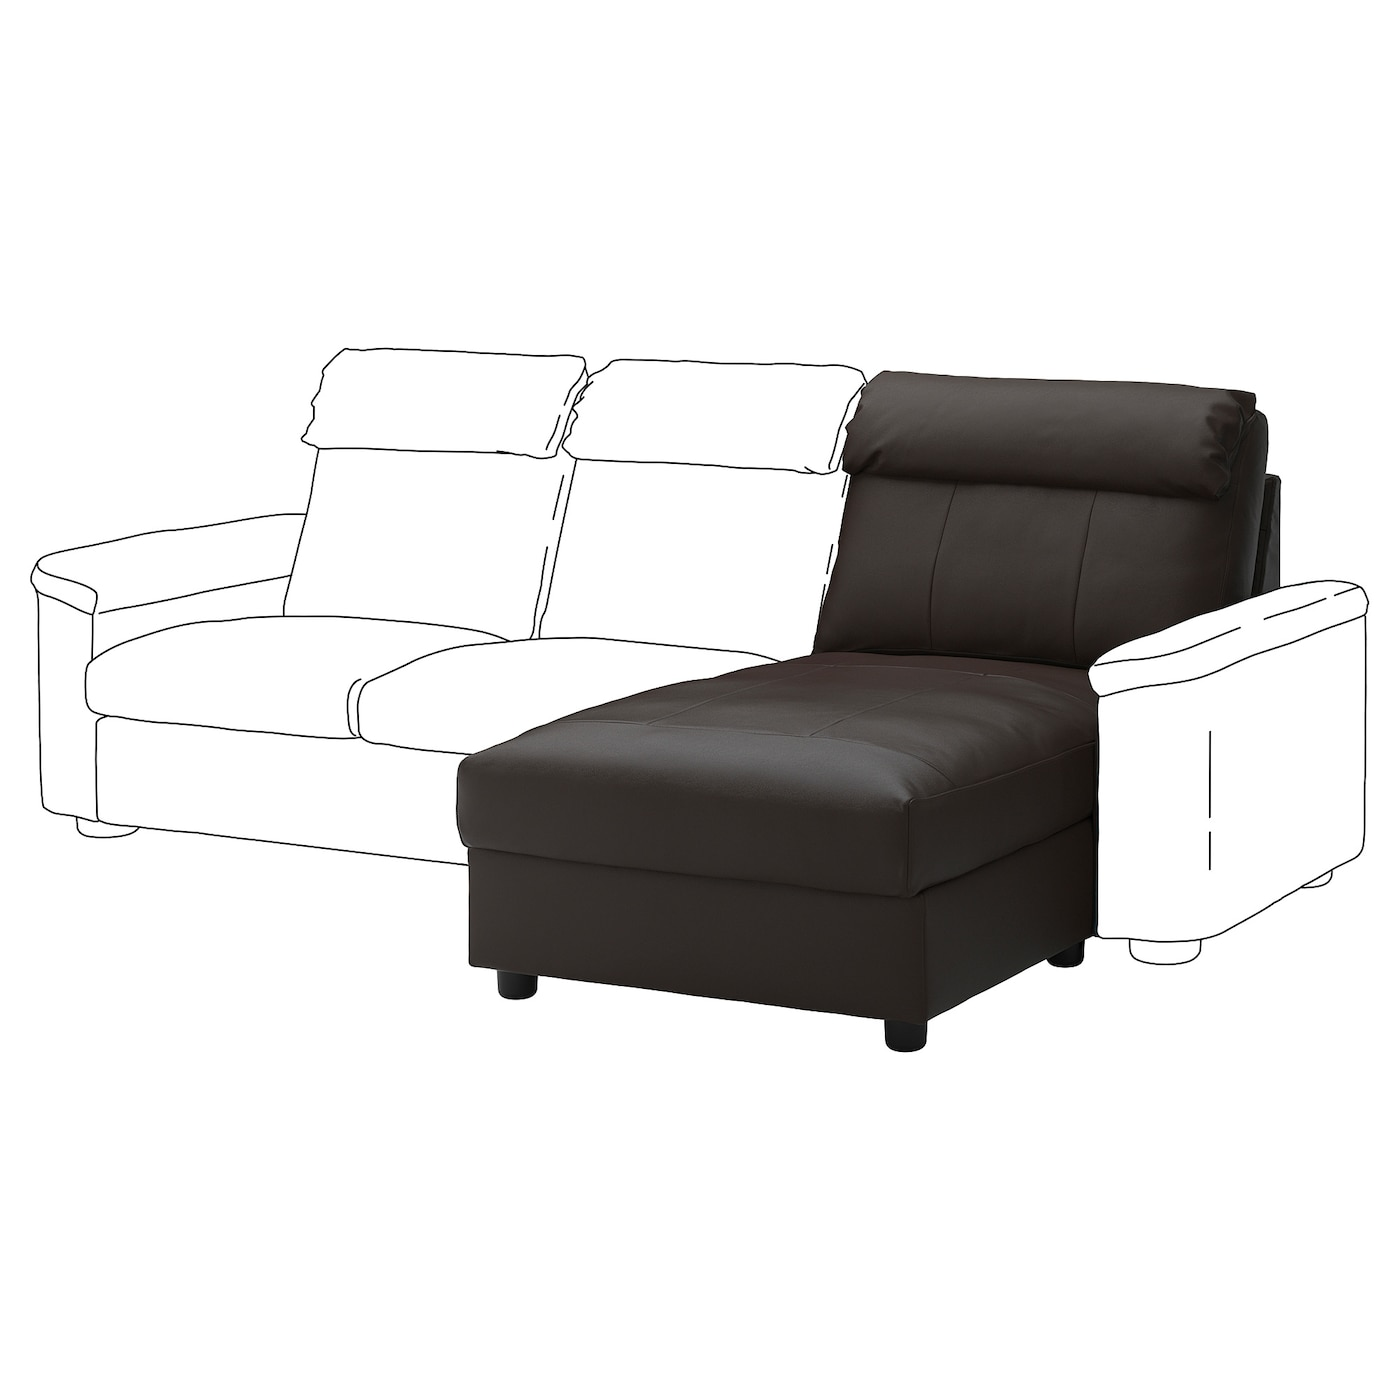 IKEA LIDHULT chaise longue section